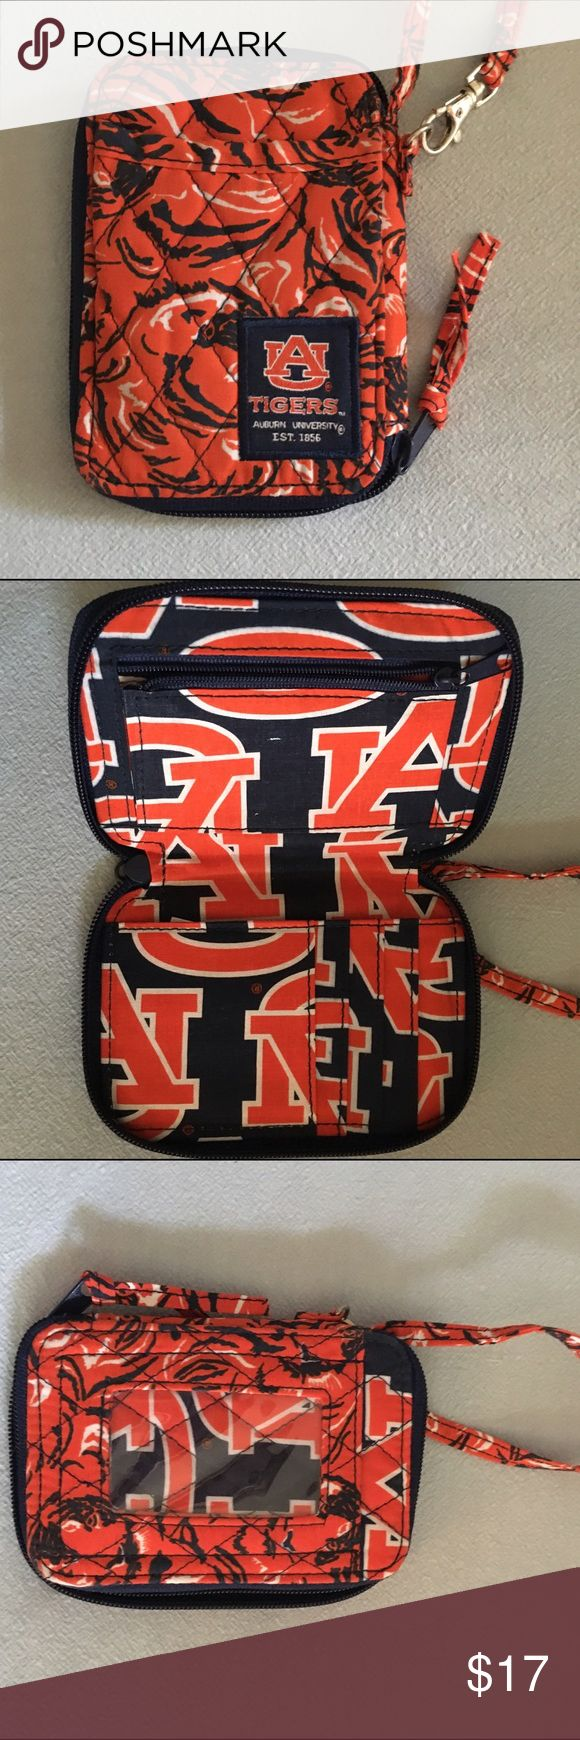 Auburn Tigers Wristlet This is in perfect condition. Used once. Will hold cash, cards, ID and possibly small phone. Bags Clutches & Wristlets